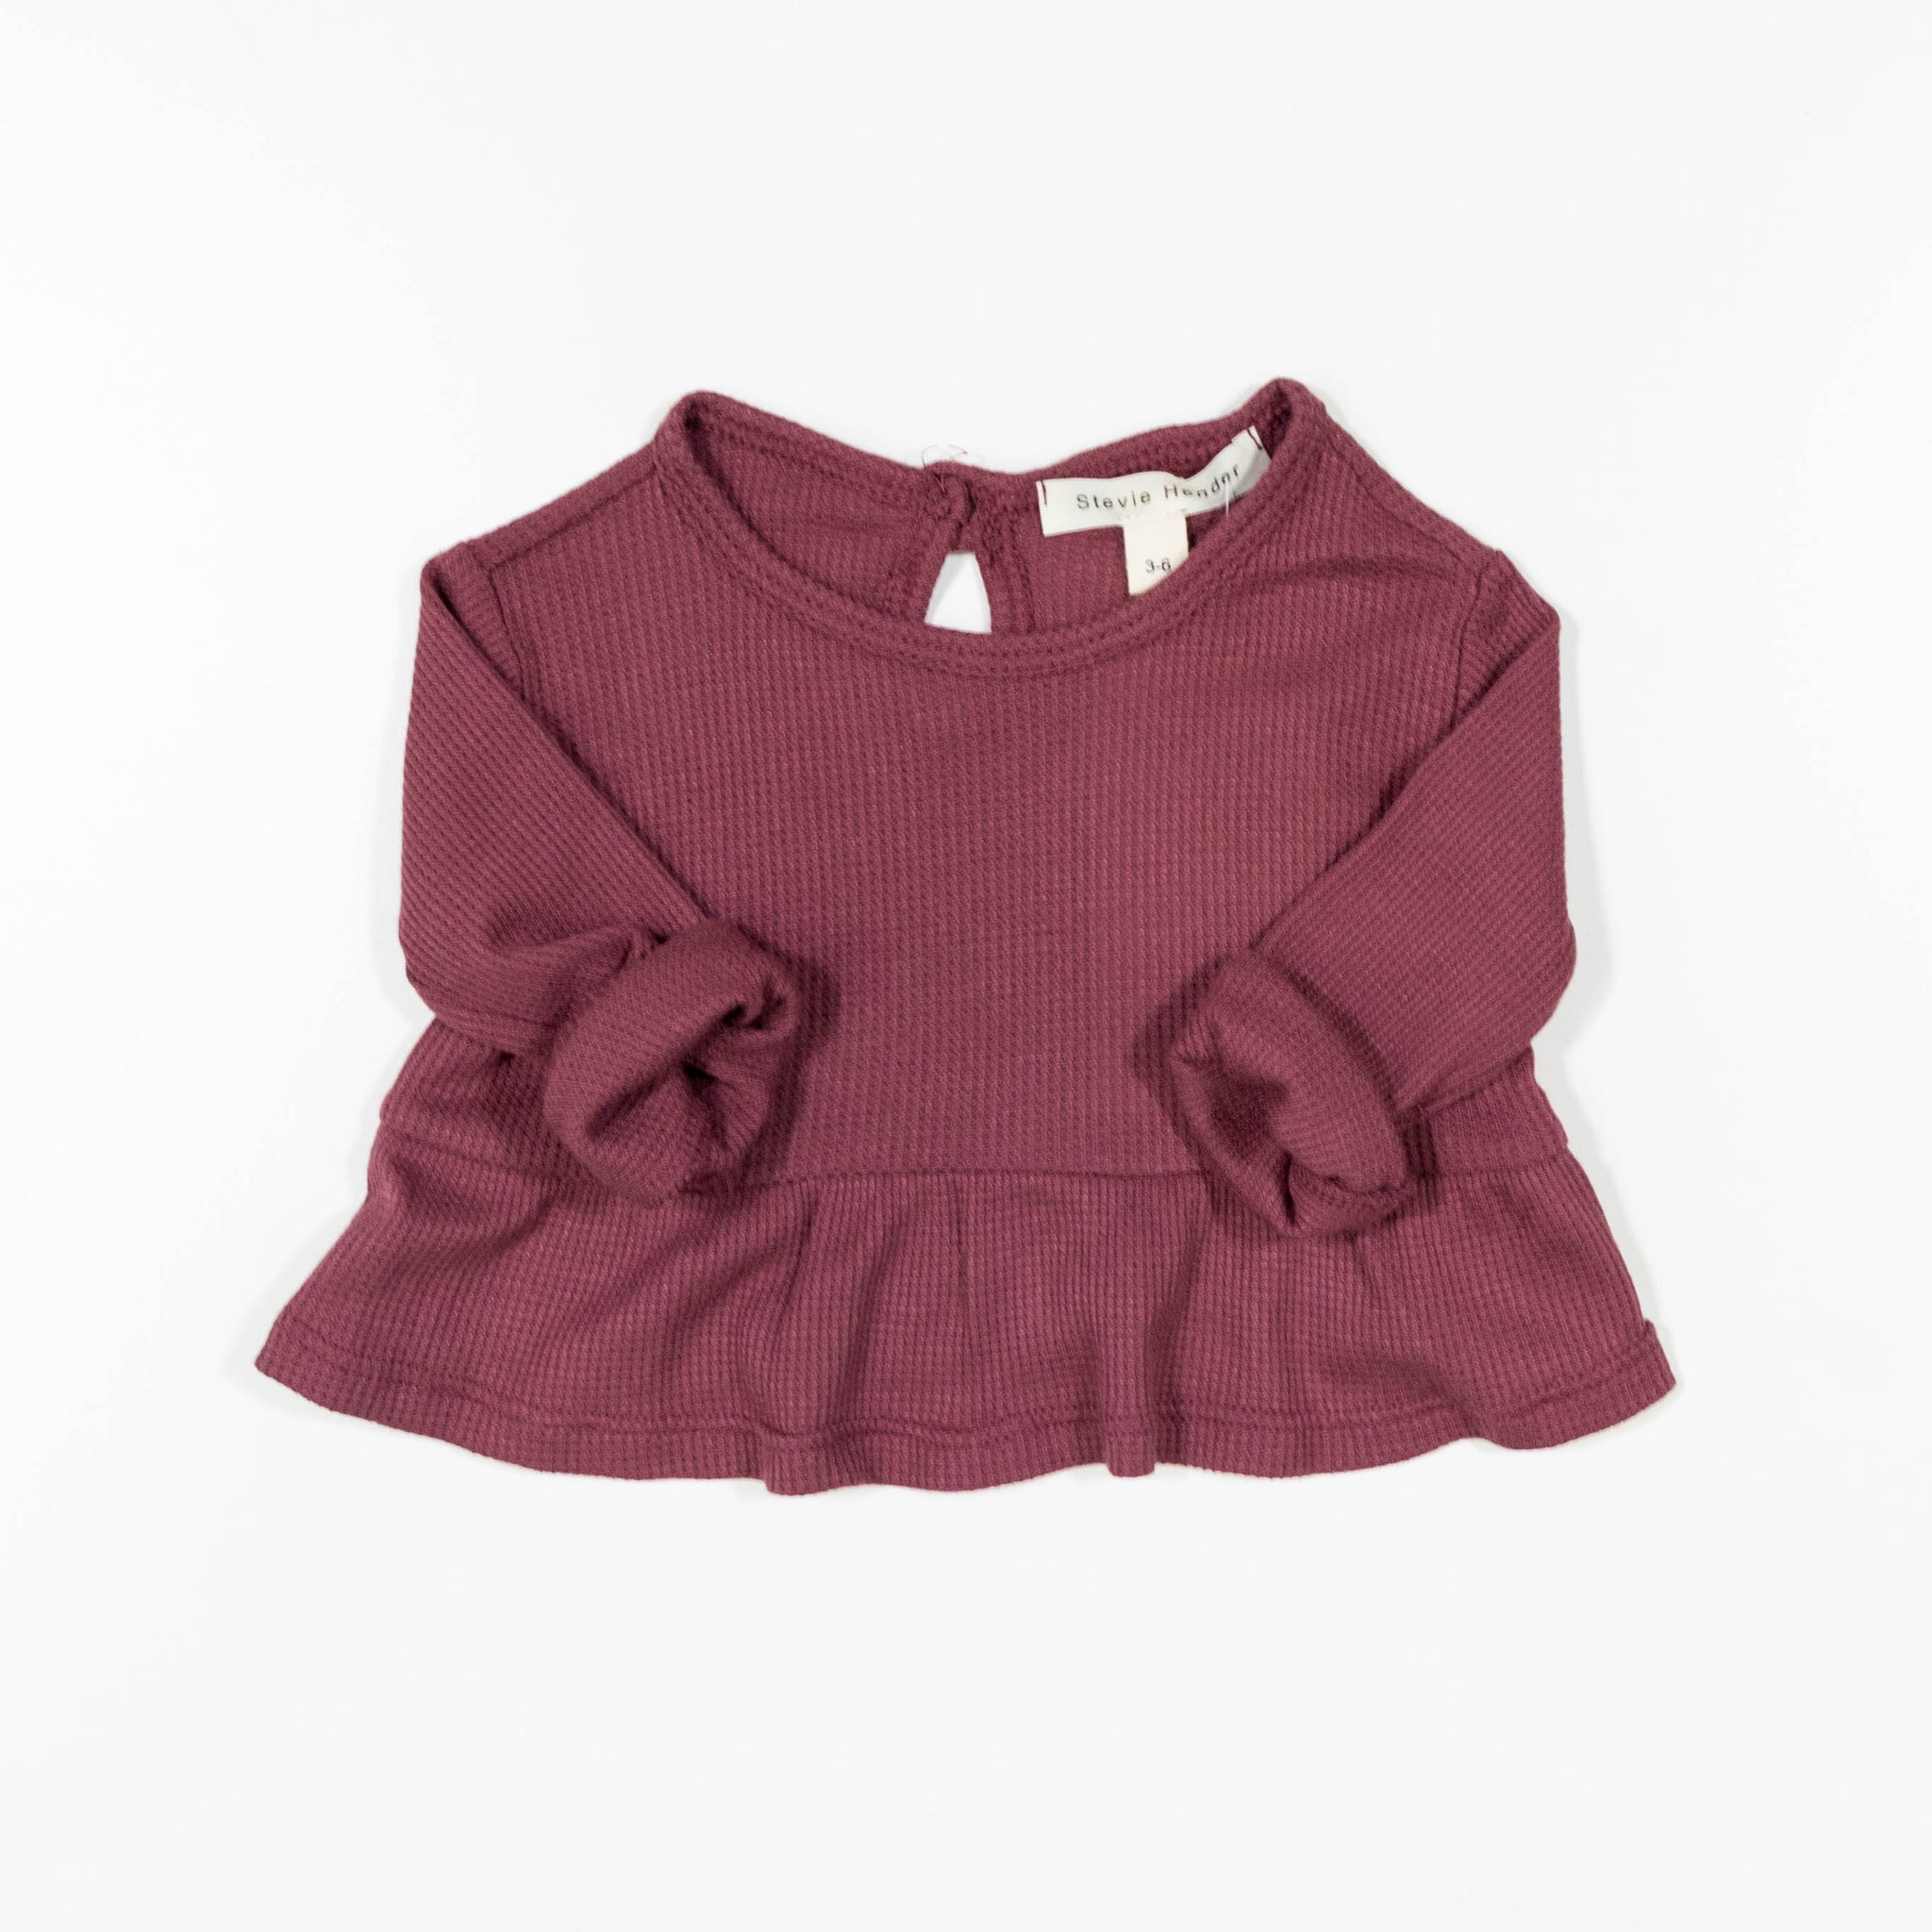 Tilly Baby Doll Top in Marsella